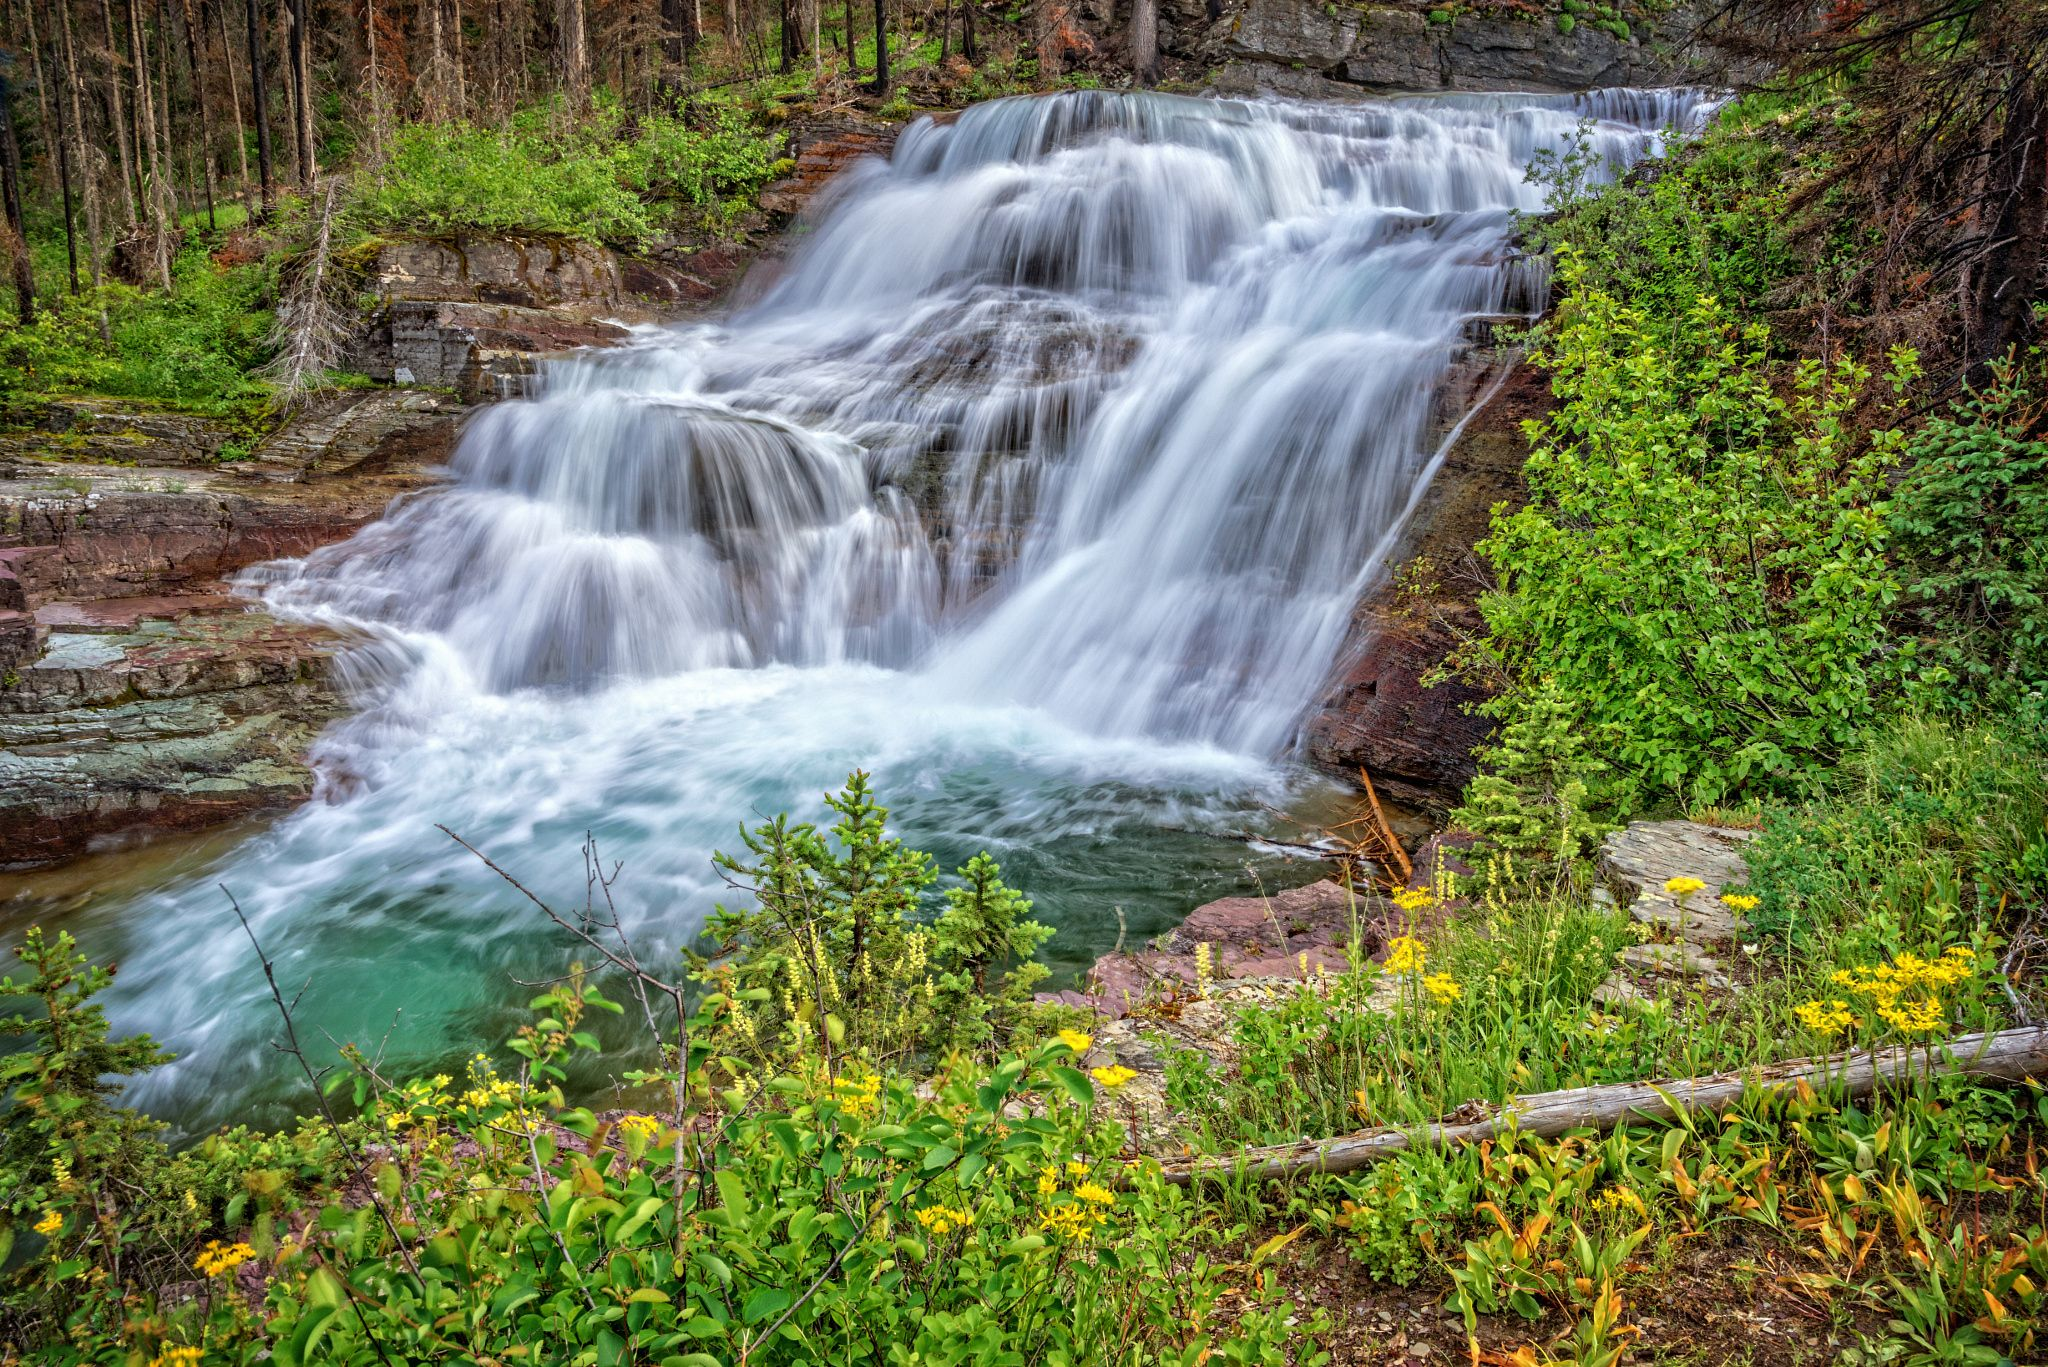 Small Falls on Virgina Creek - Small falls and wildflowers on Virginia Creek in Glacier National Park, Montana.